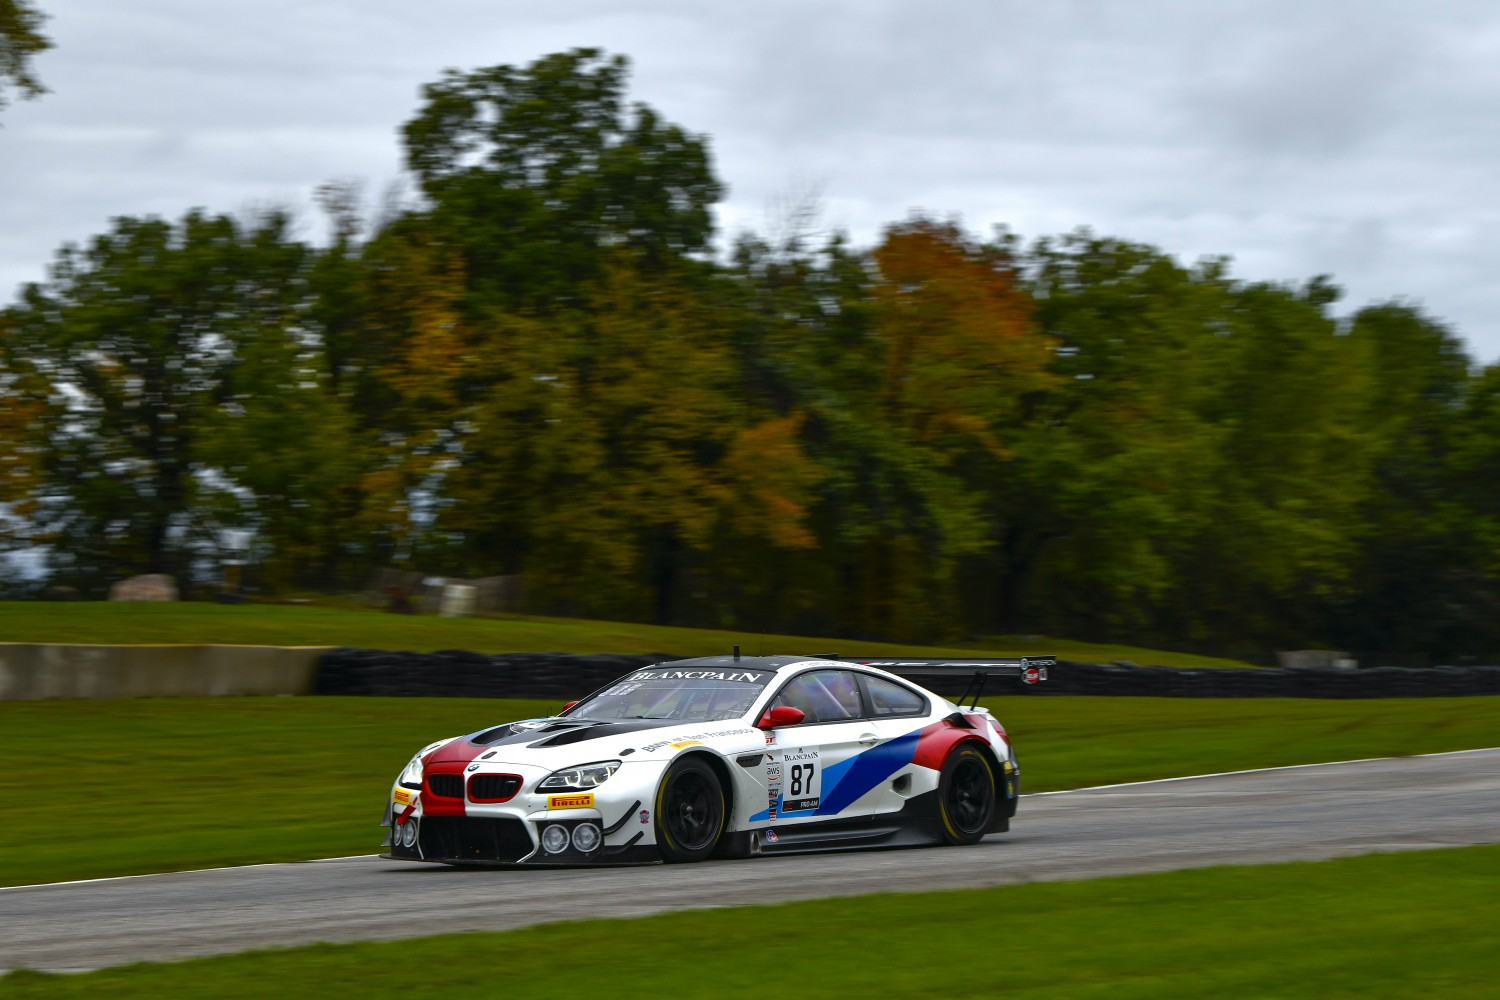 #87 BMW F13 M6 GT3 of Henry Schmitt and Gregory Liefooghe with Stephen Cameron Racing  Road America World Challenge America , Elkhart Lake WI | Gavin Baker/SRO